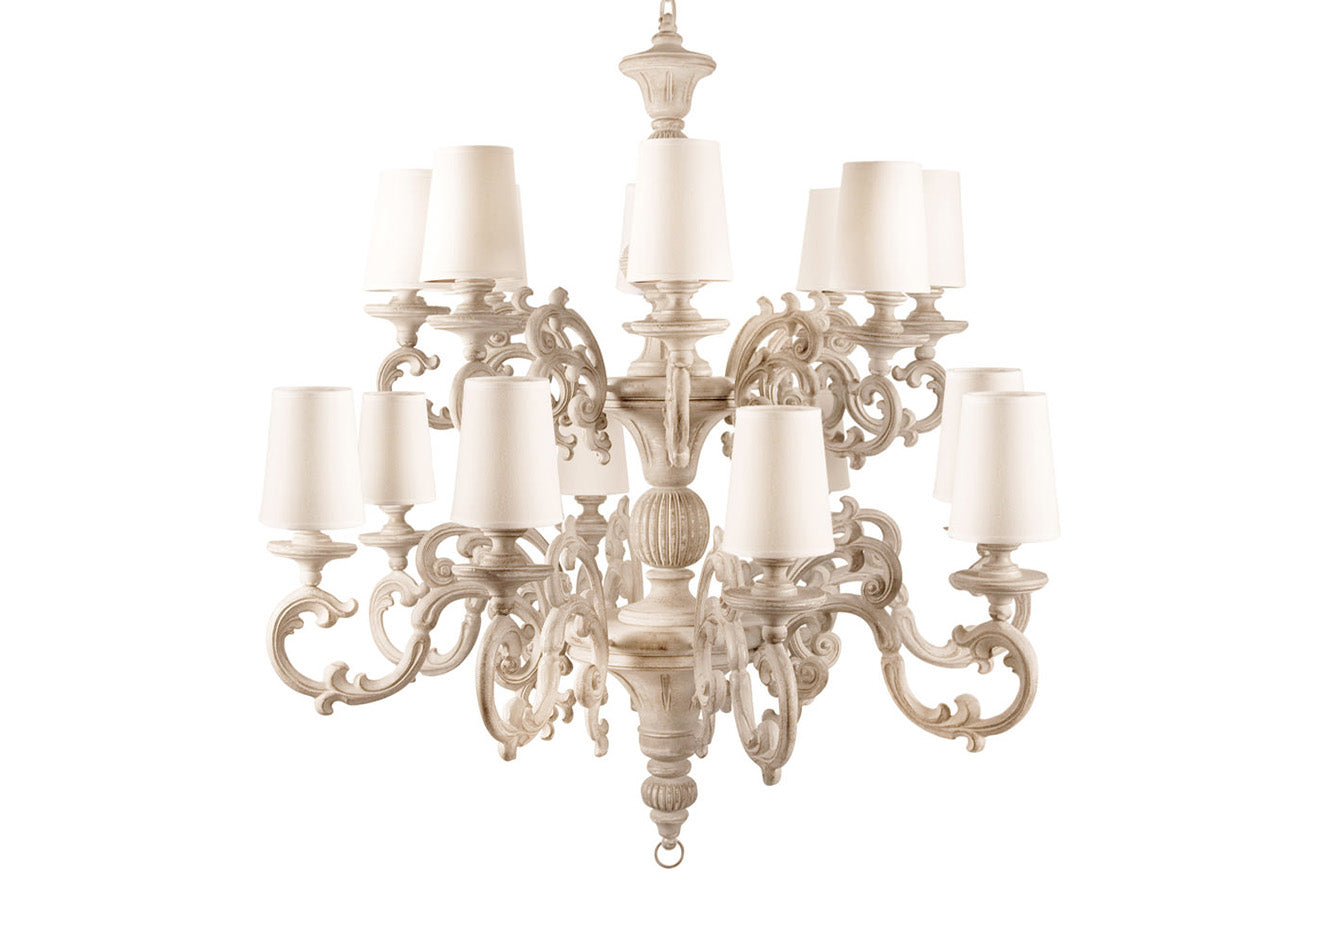 Villaverde luxury lighting designs wooden chandelier